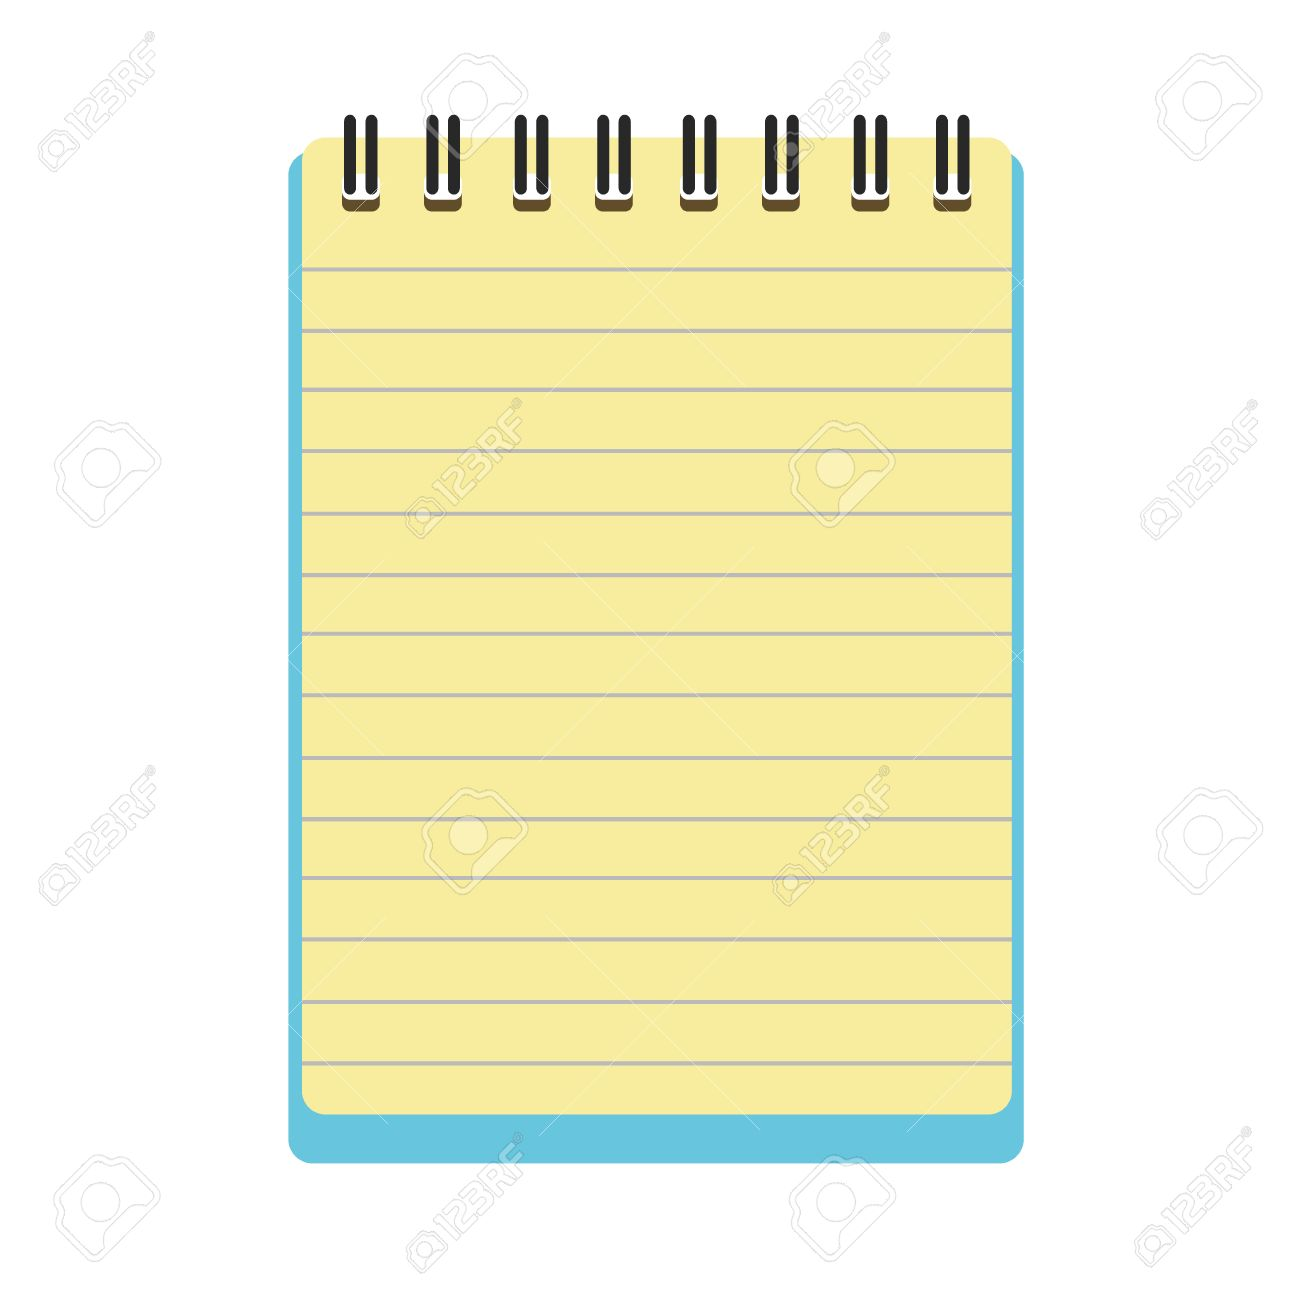 blank notepad vector royalty free cliparts vectors and stock rh 123rf com notebook vector mobile vector notebook